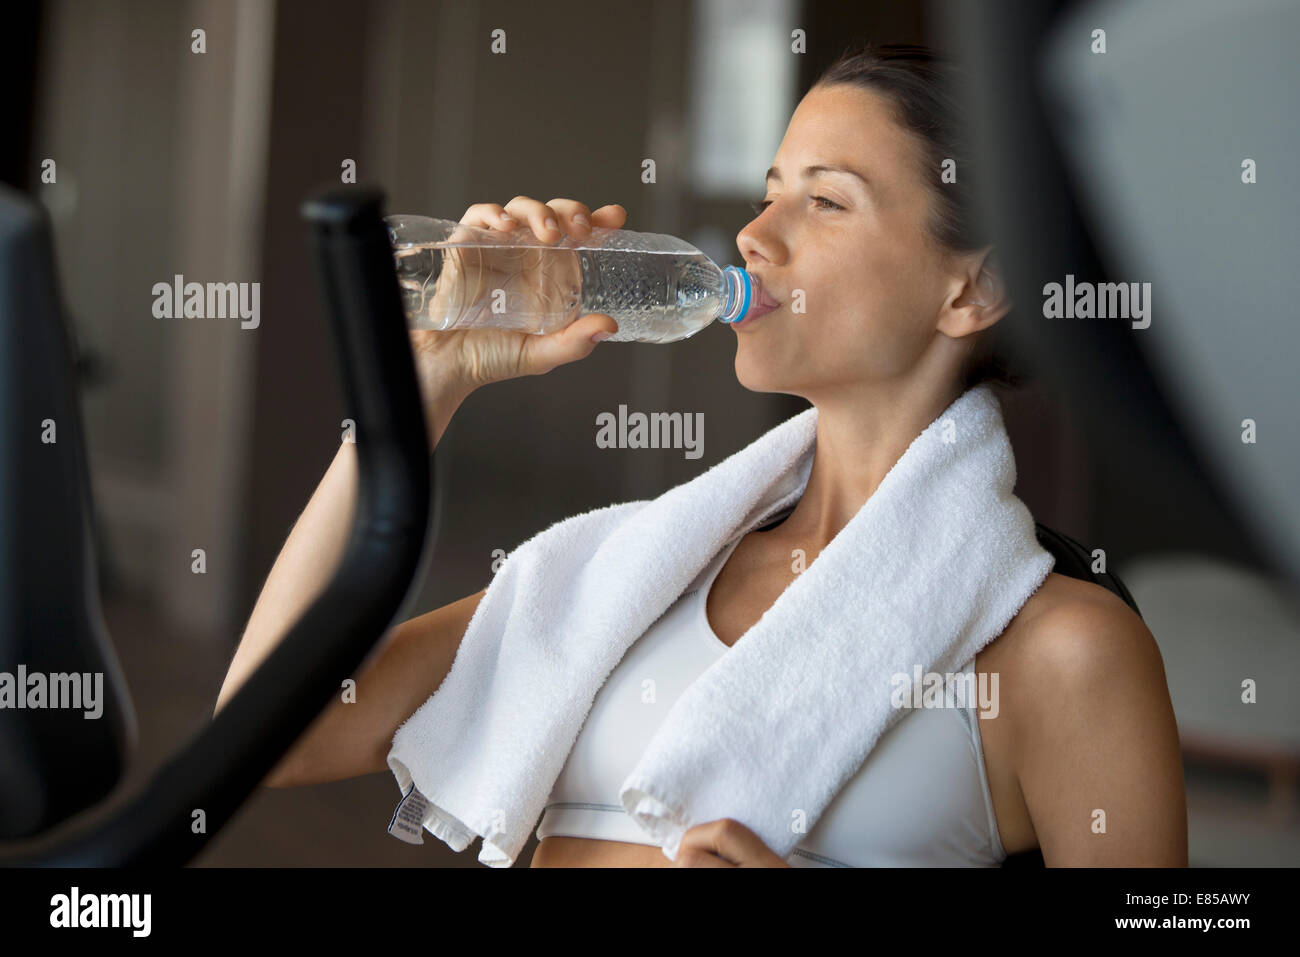 Woman drinking water in health club - Stock Image